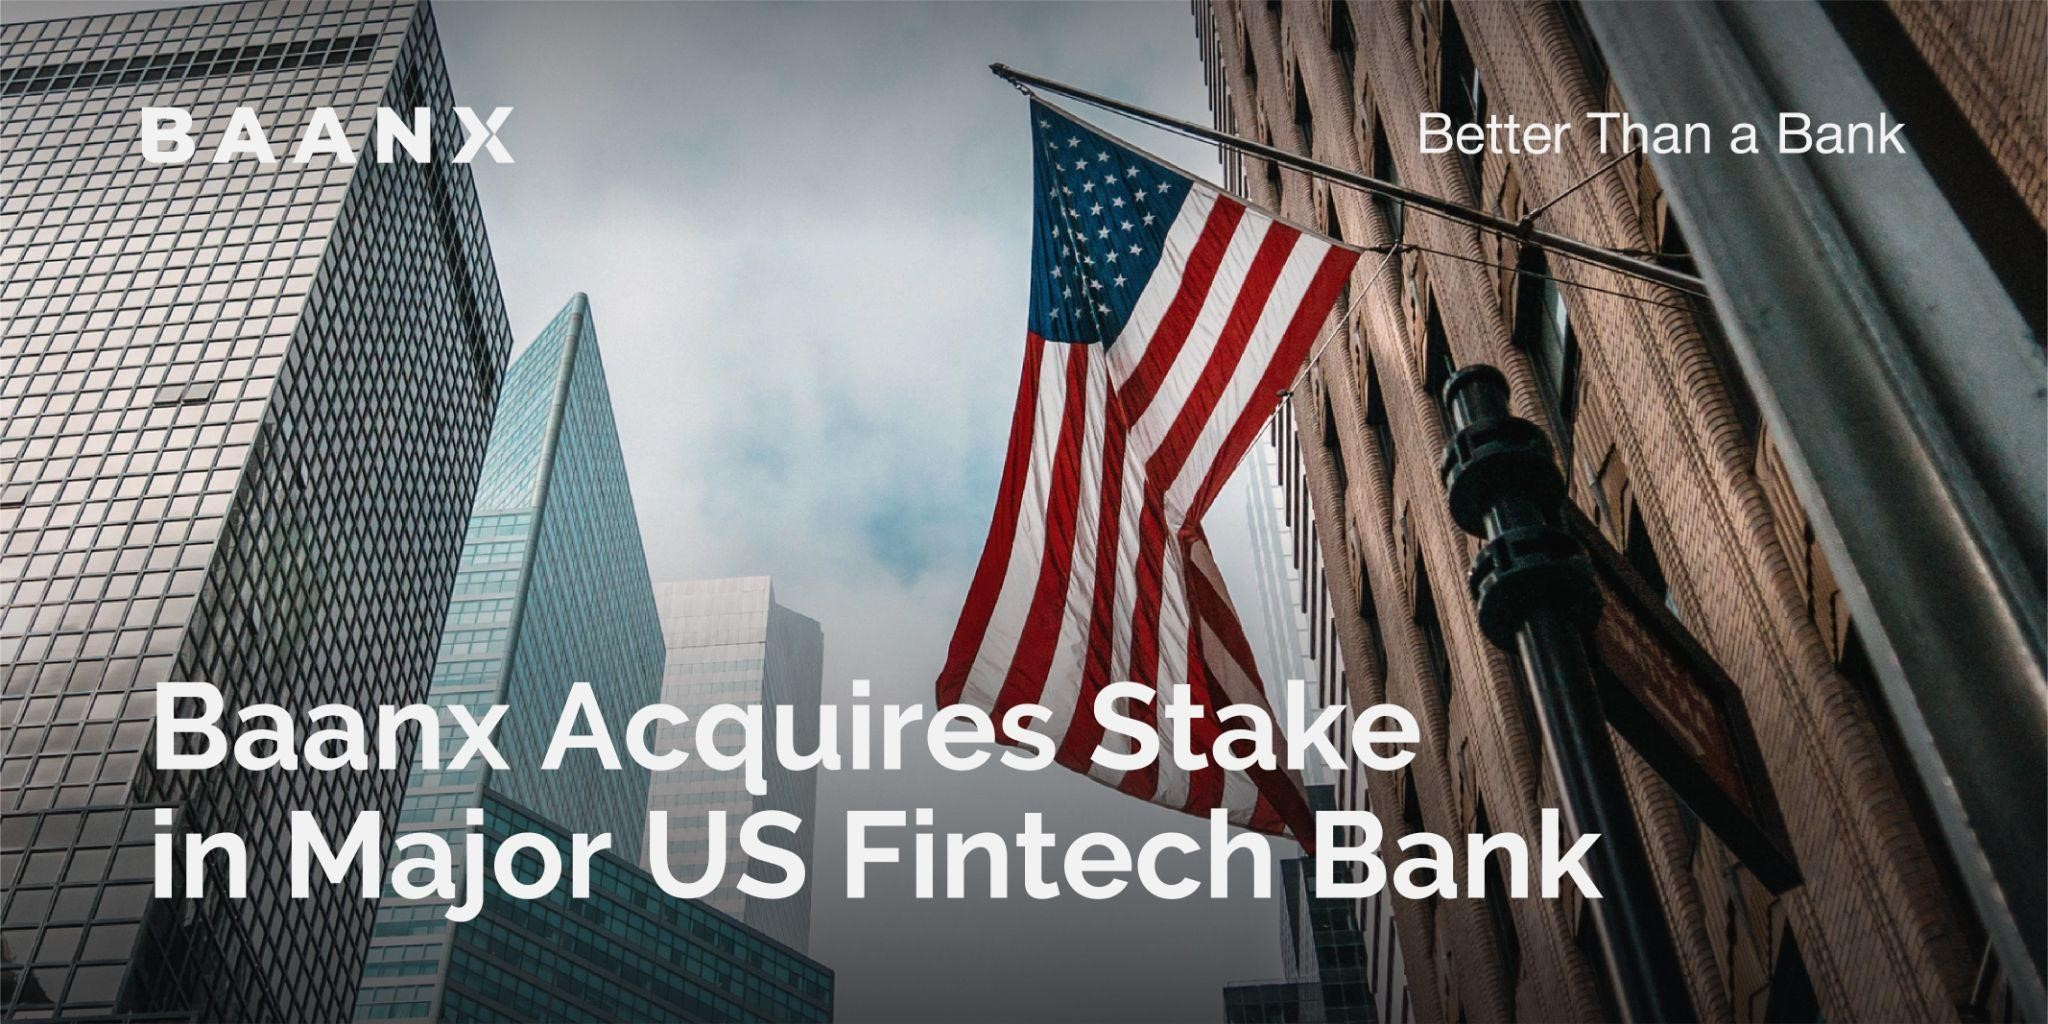 Baanx Acquires Stake in Major US Fintech Bank